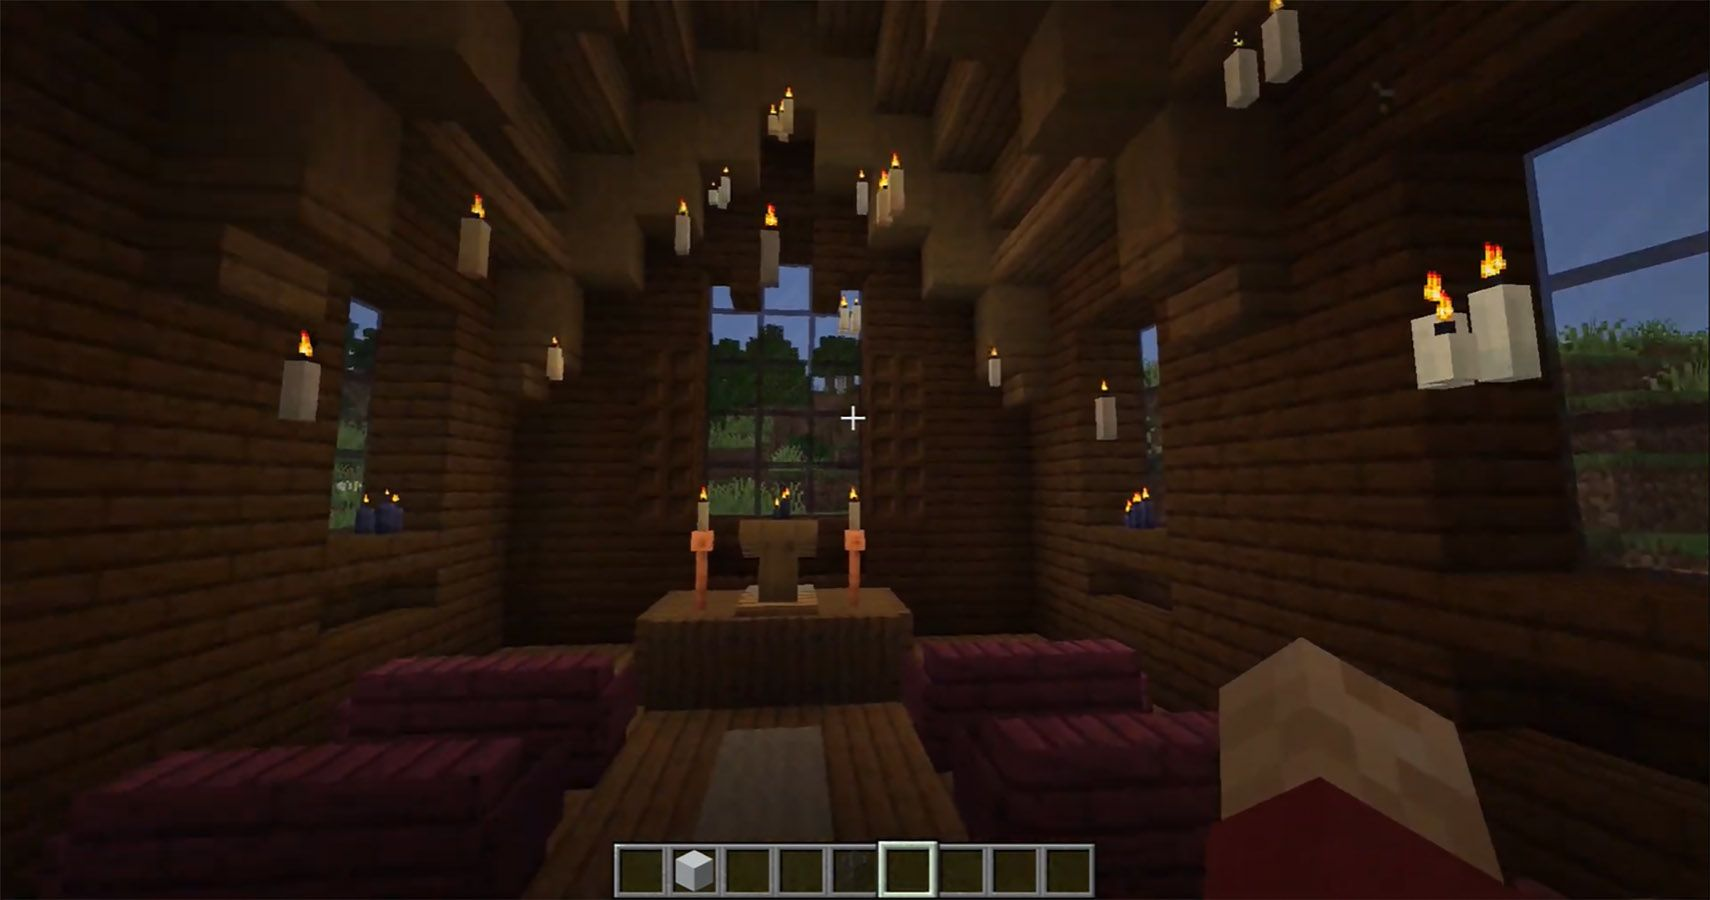 Harry Potter's Floating Candles Are Now A Reality In Minecraft